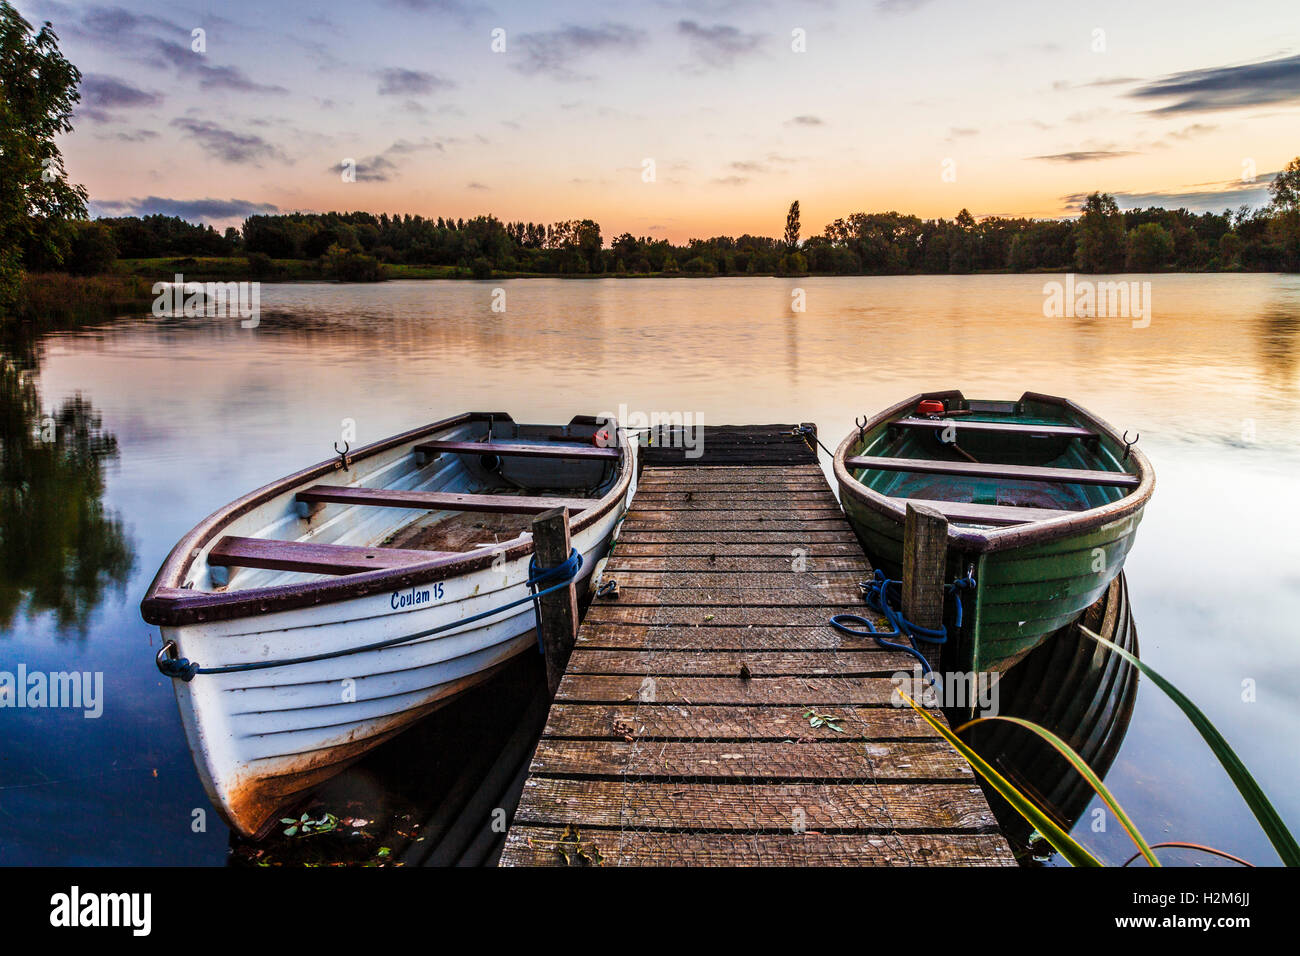 Late summer sunrise on one of the lakes at Cotswold Water Park - Stock Image